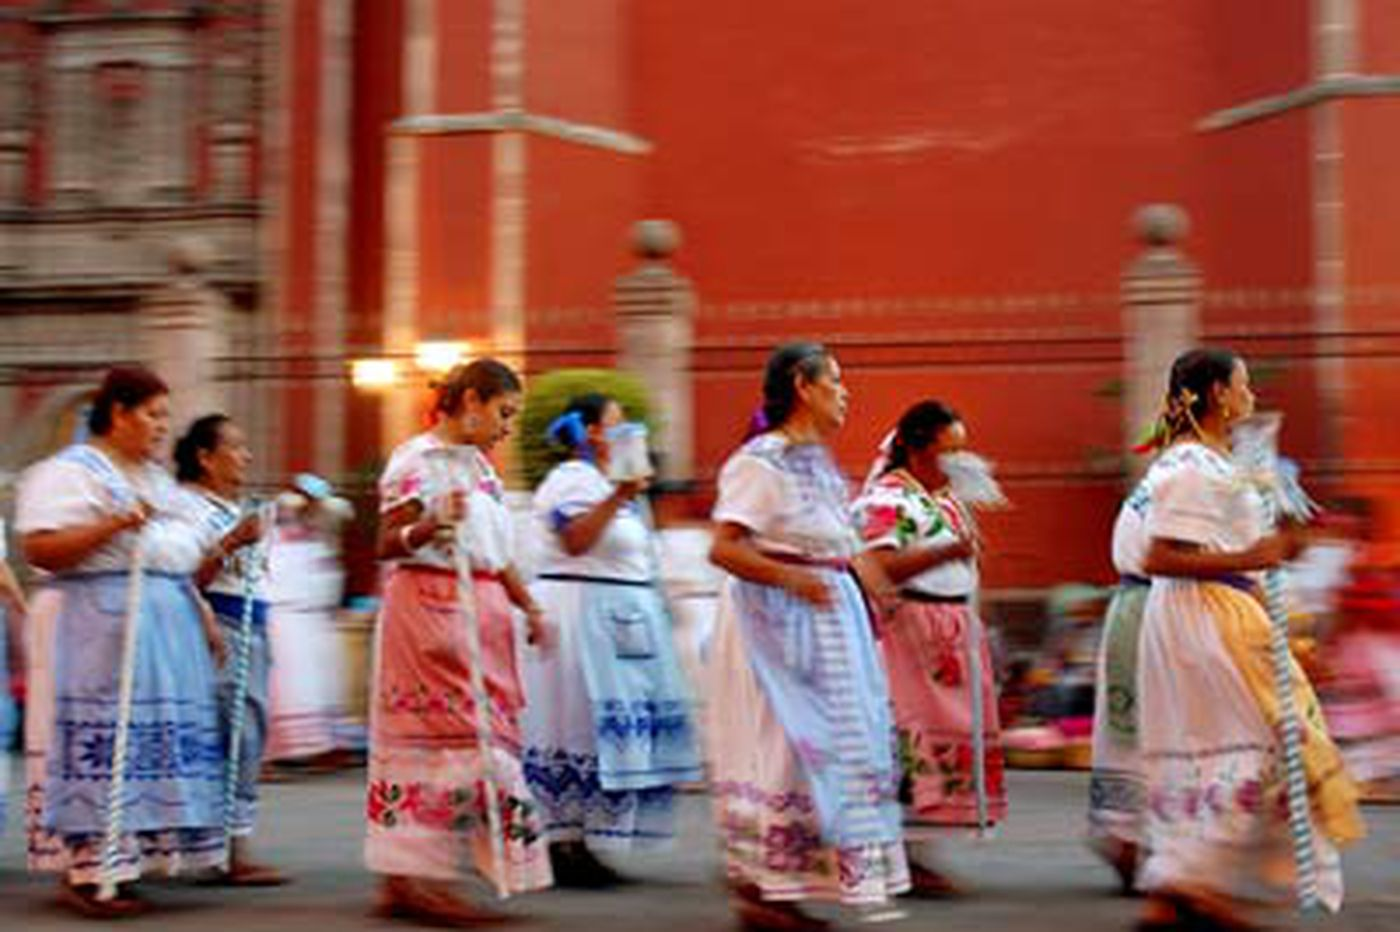 In Mexico, once a turbulent town